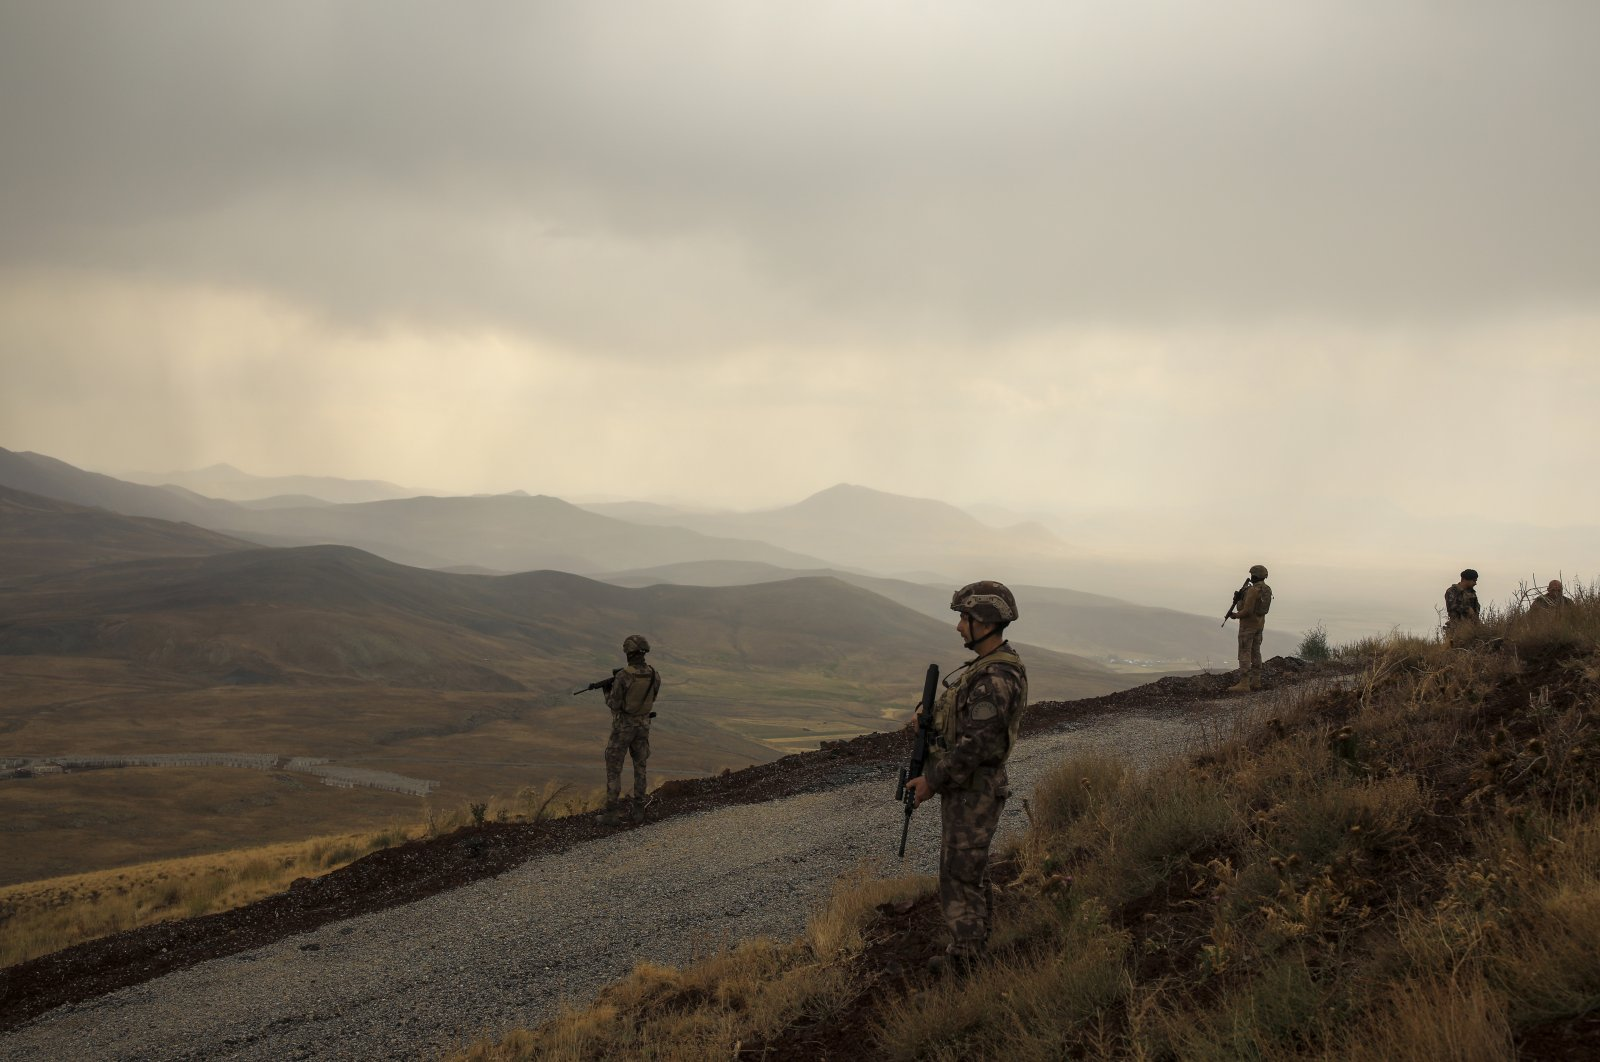 Turkish soldiers stand guard near the wall that separates Turkey and Iran, in Van Province, Turkey, Aug. 21, 2021. (AP Photo)